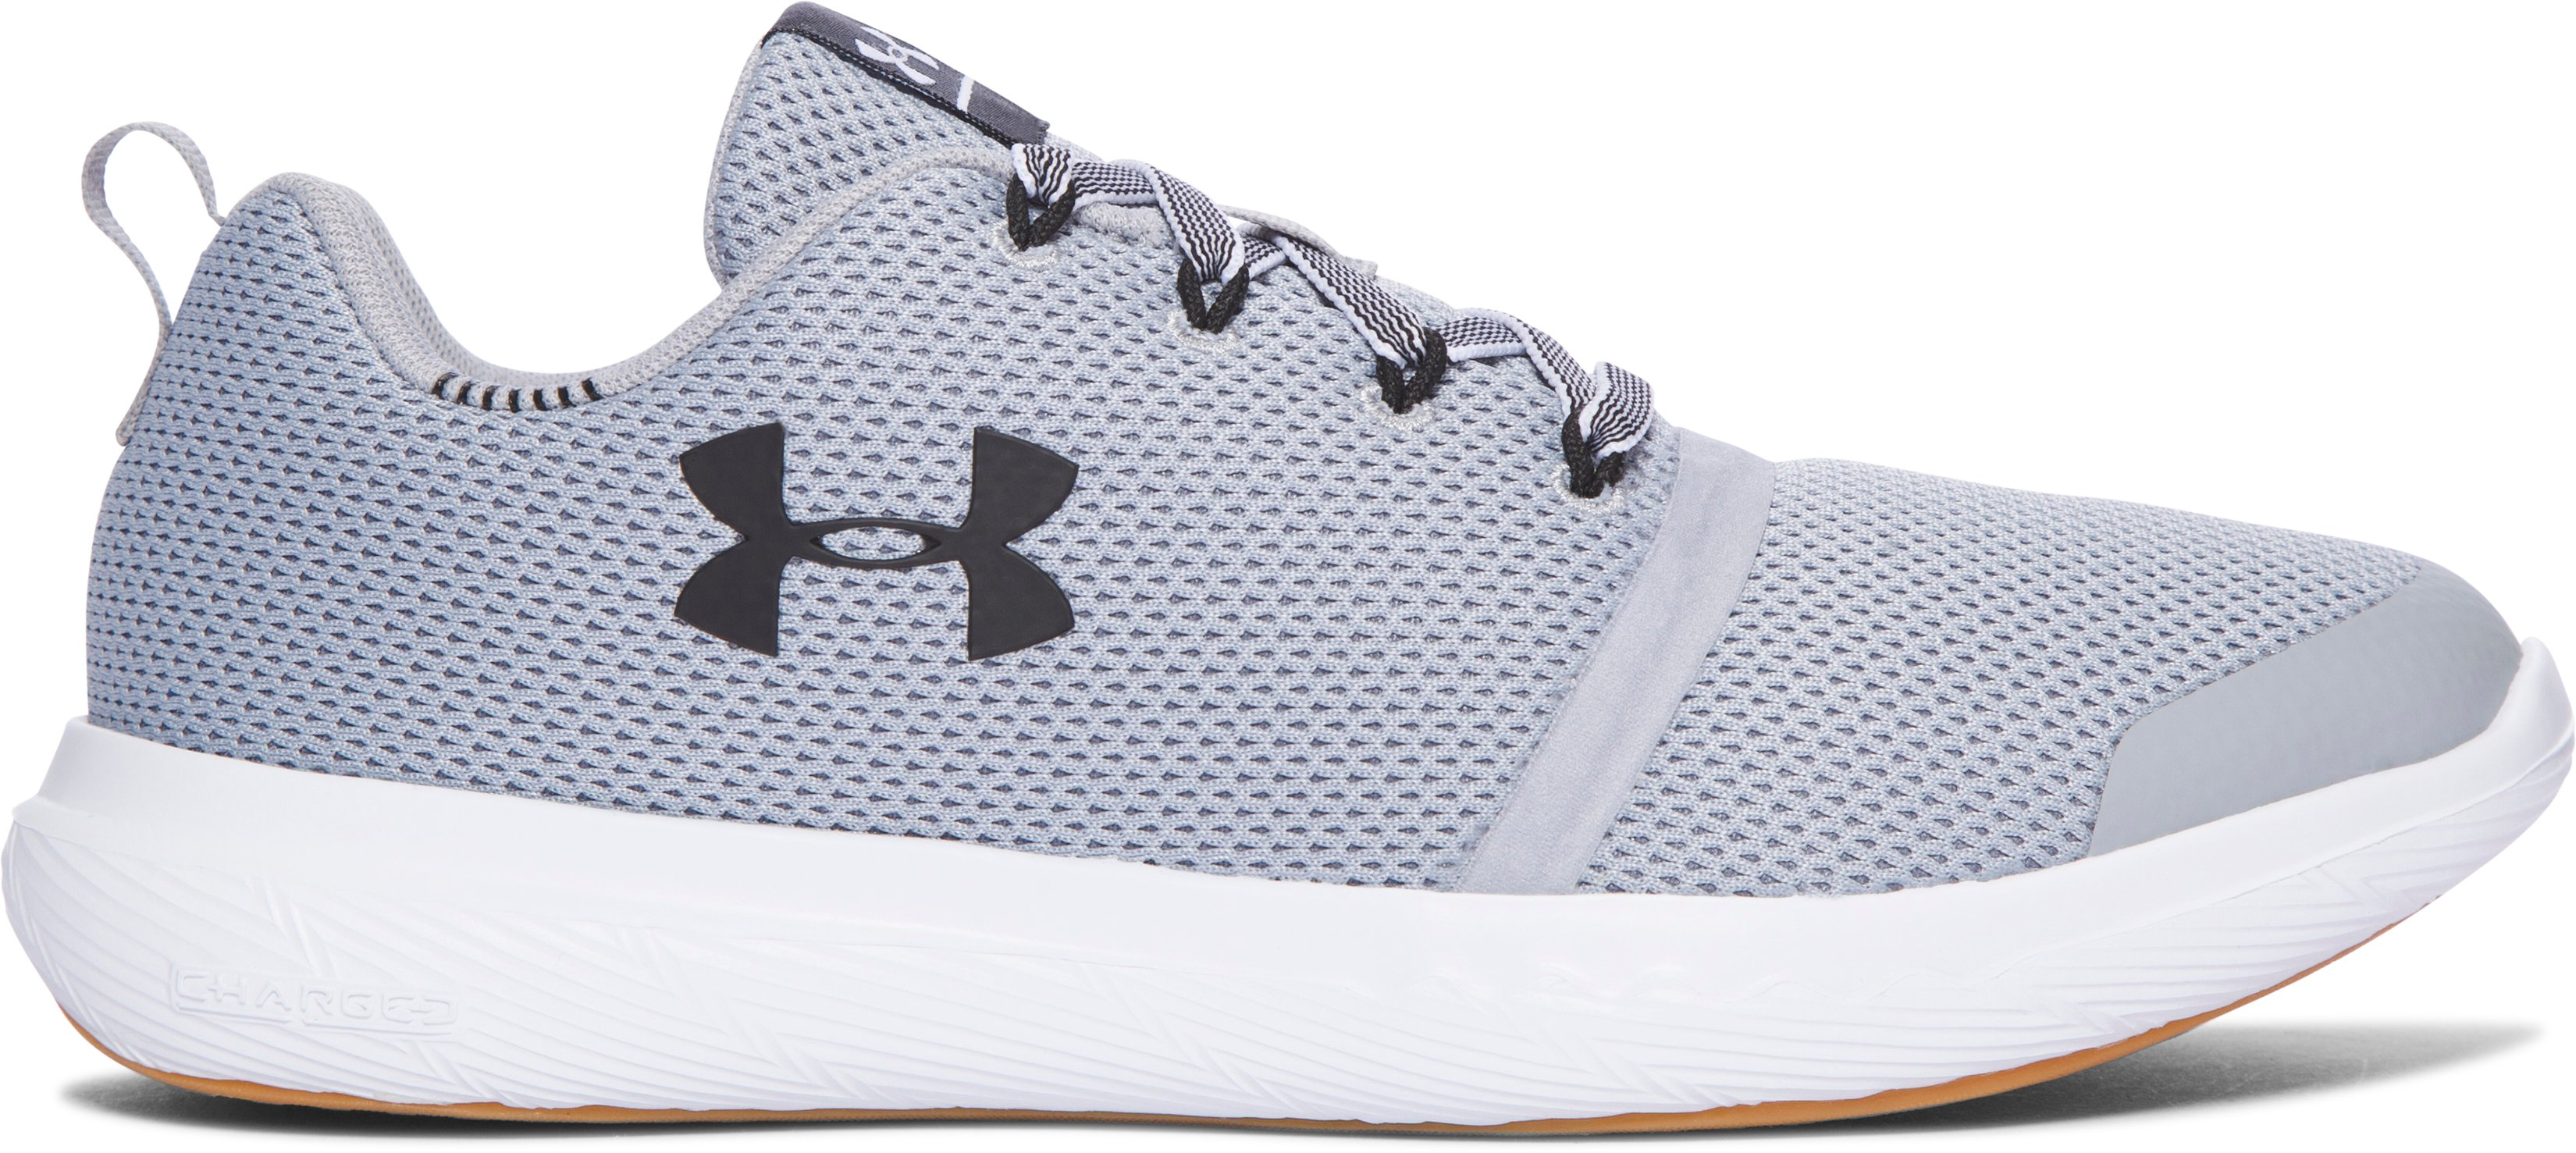 Kids' Grade School UA Charged 24/7 Low Vibes Lifestyle Shoes, OVERCAST GRAY